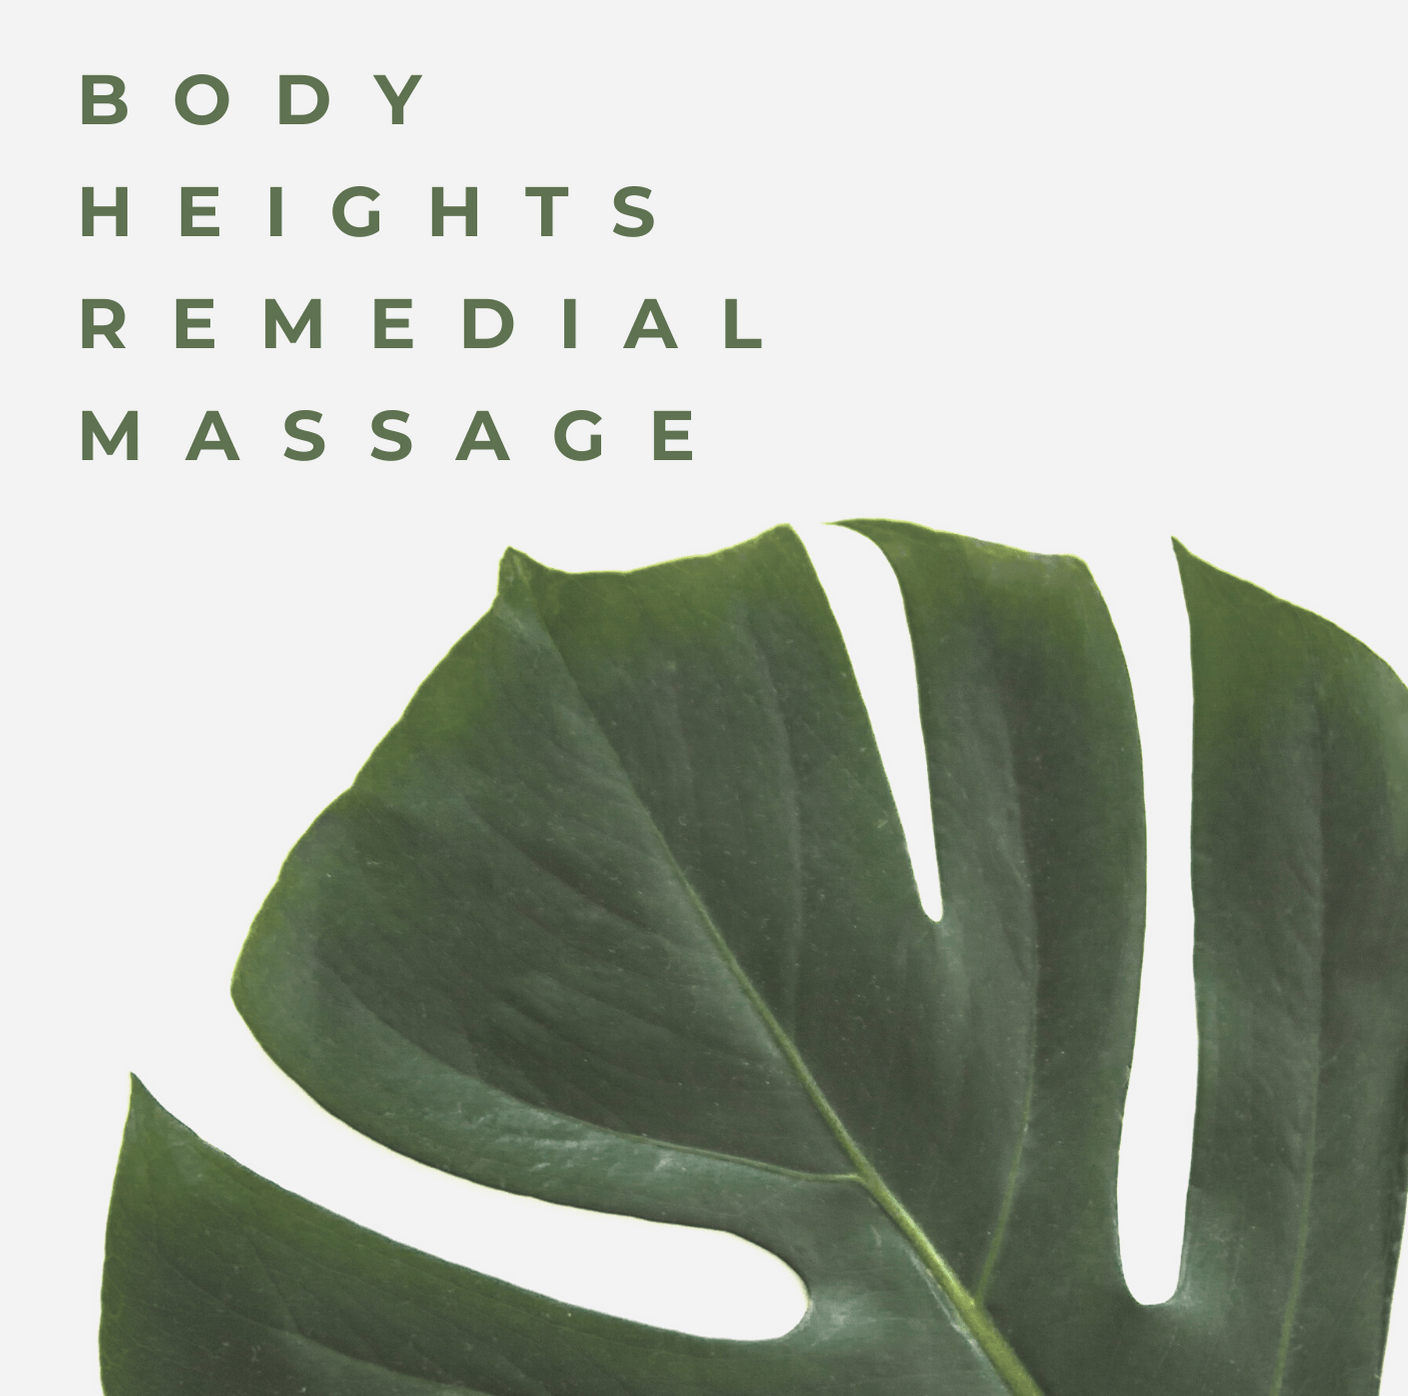 Body Heights Remedial Massage